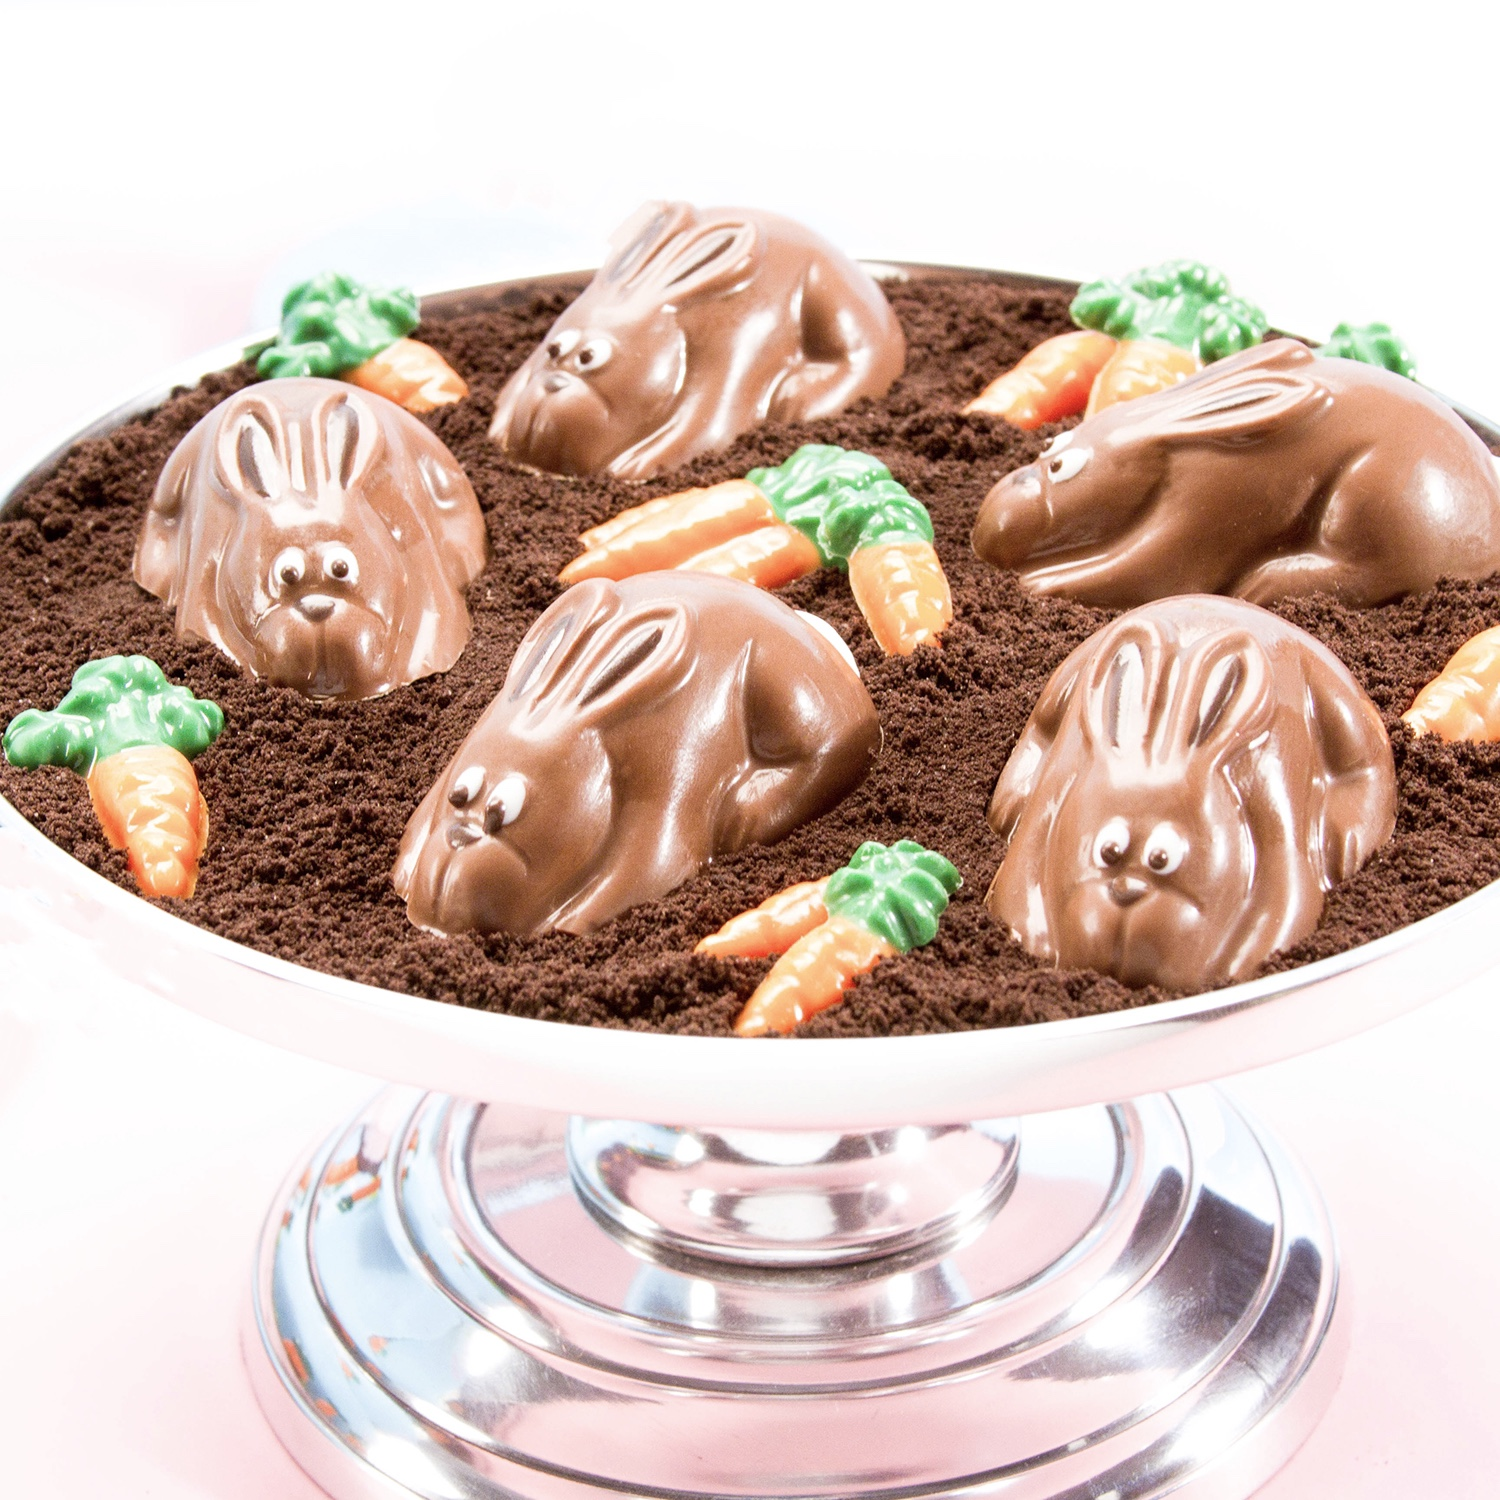 Chocolate Bunnies & Carrots